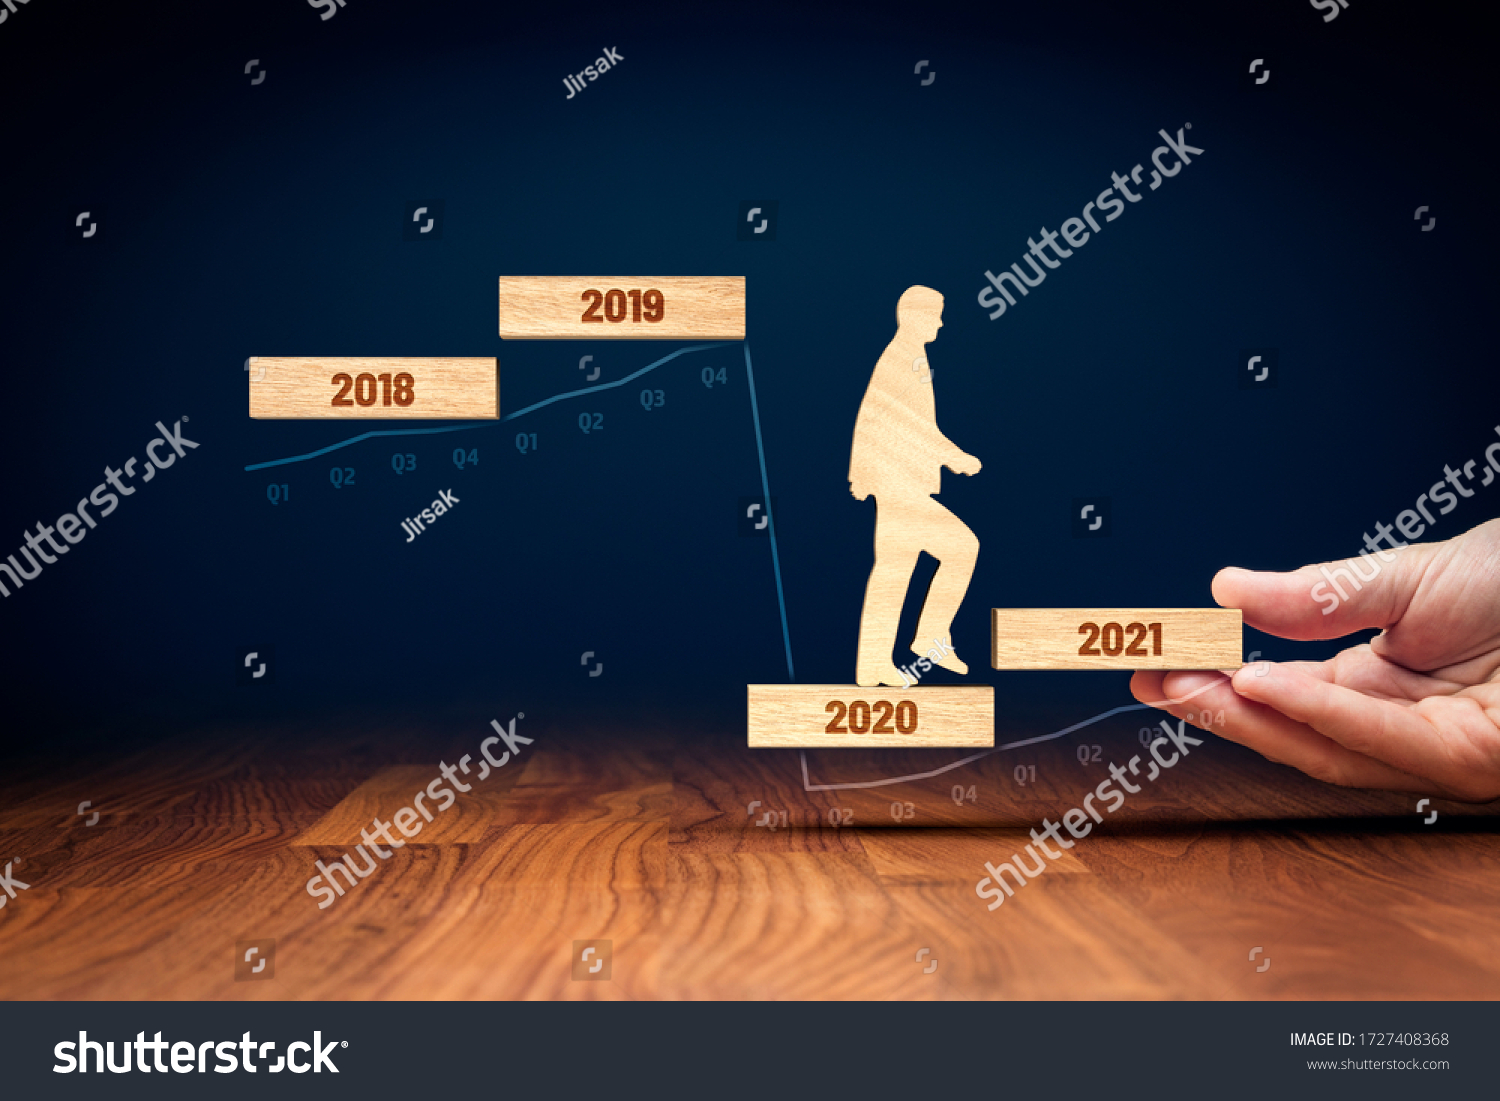 Post covid-19 era helping hand for business and economy concept. Government economic stimulus after covid-19. Secretary of the treasury (politician) stimulate economy for GDP growth in year 2021. #1727408368